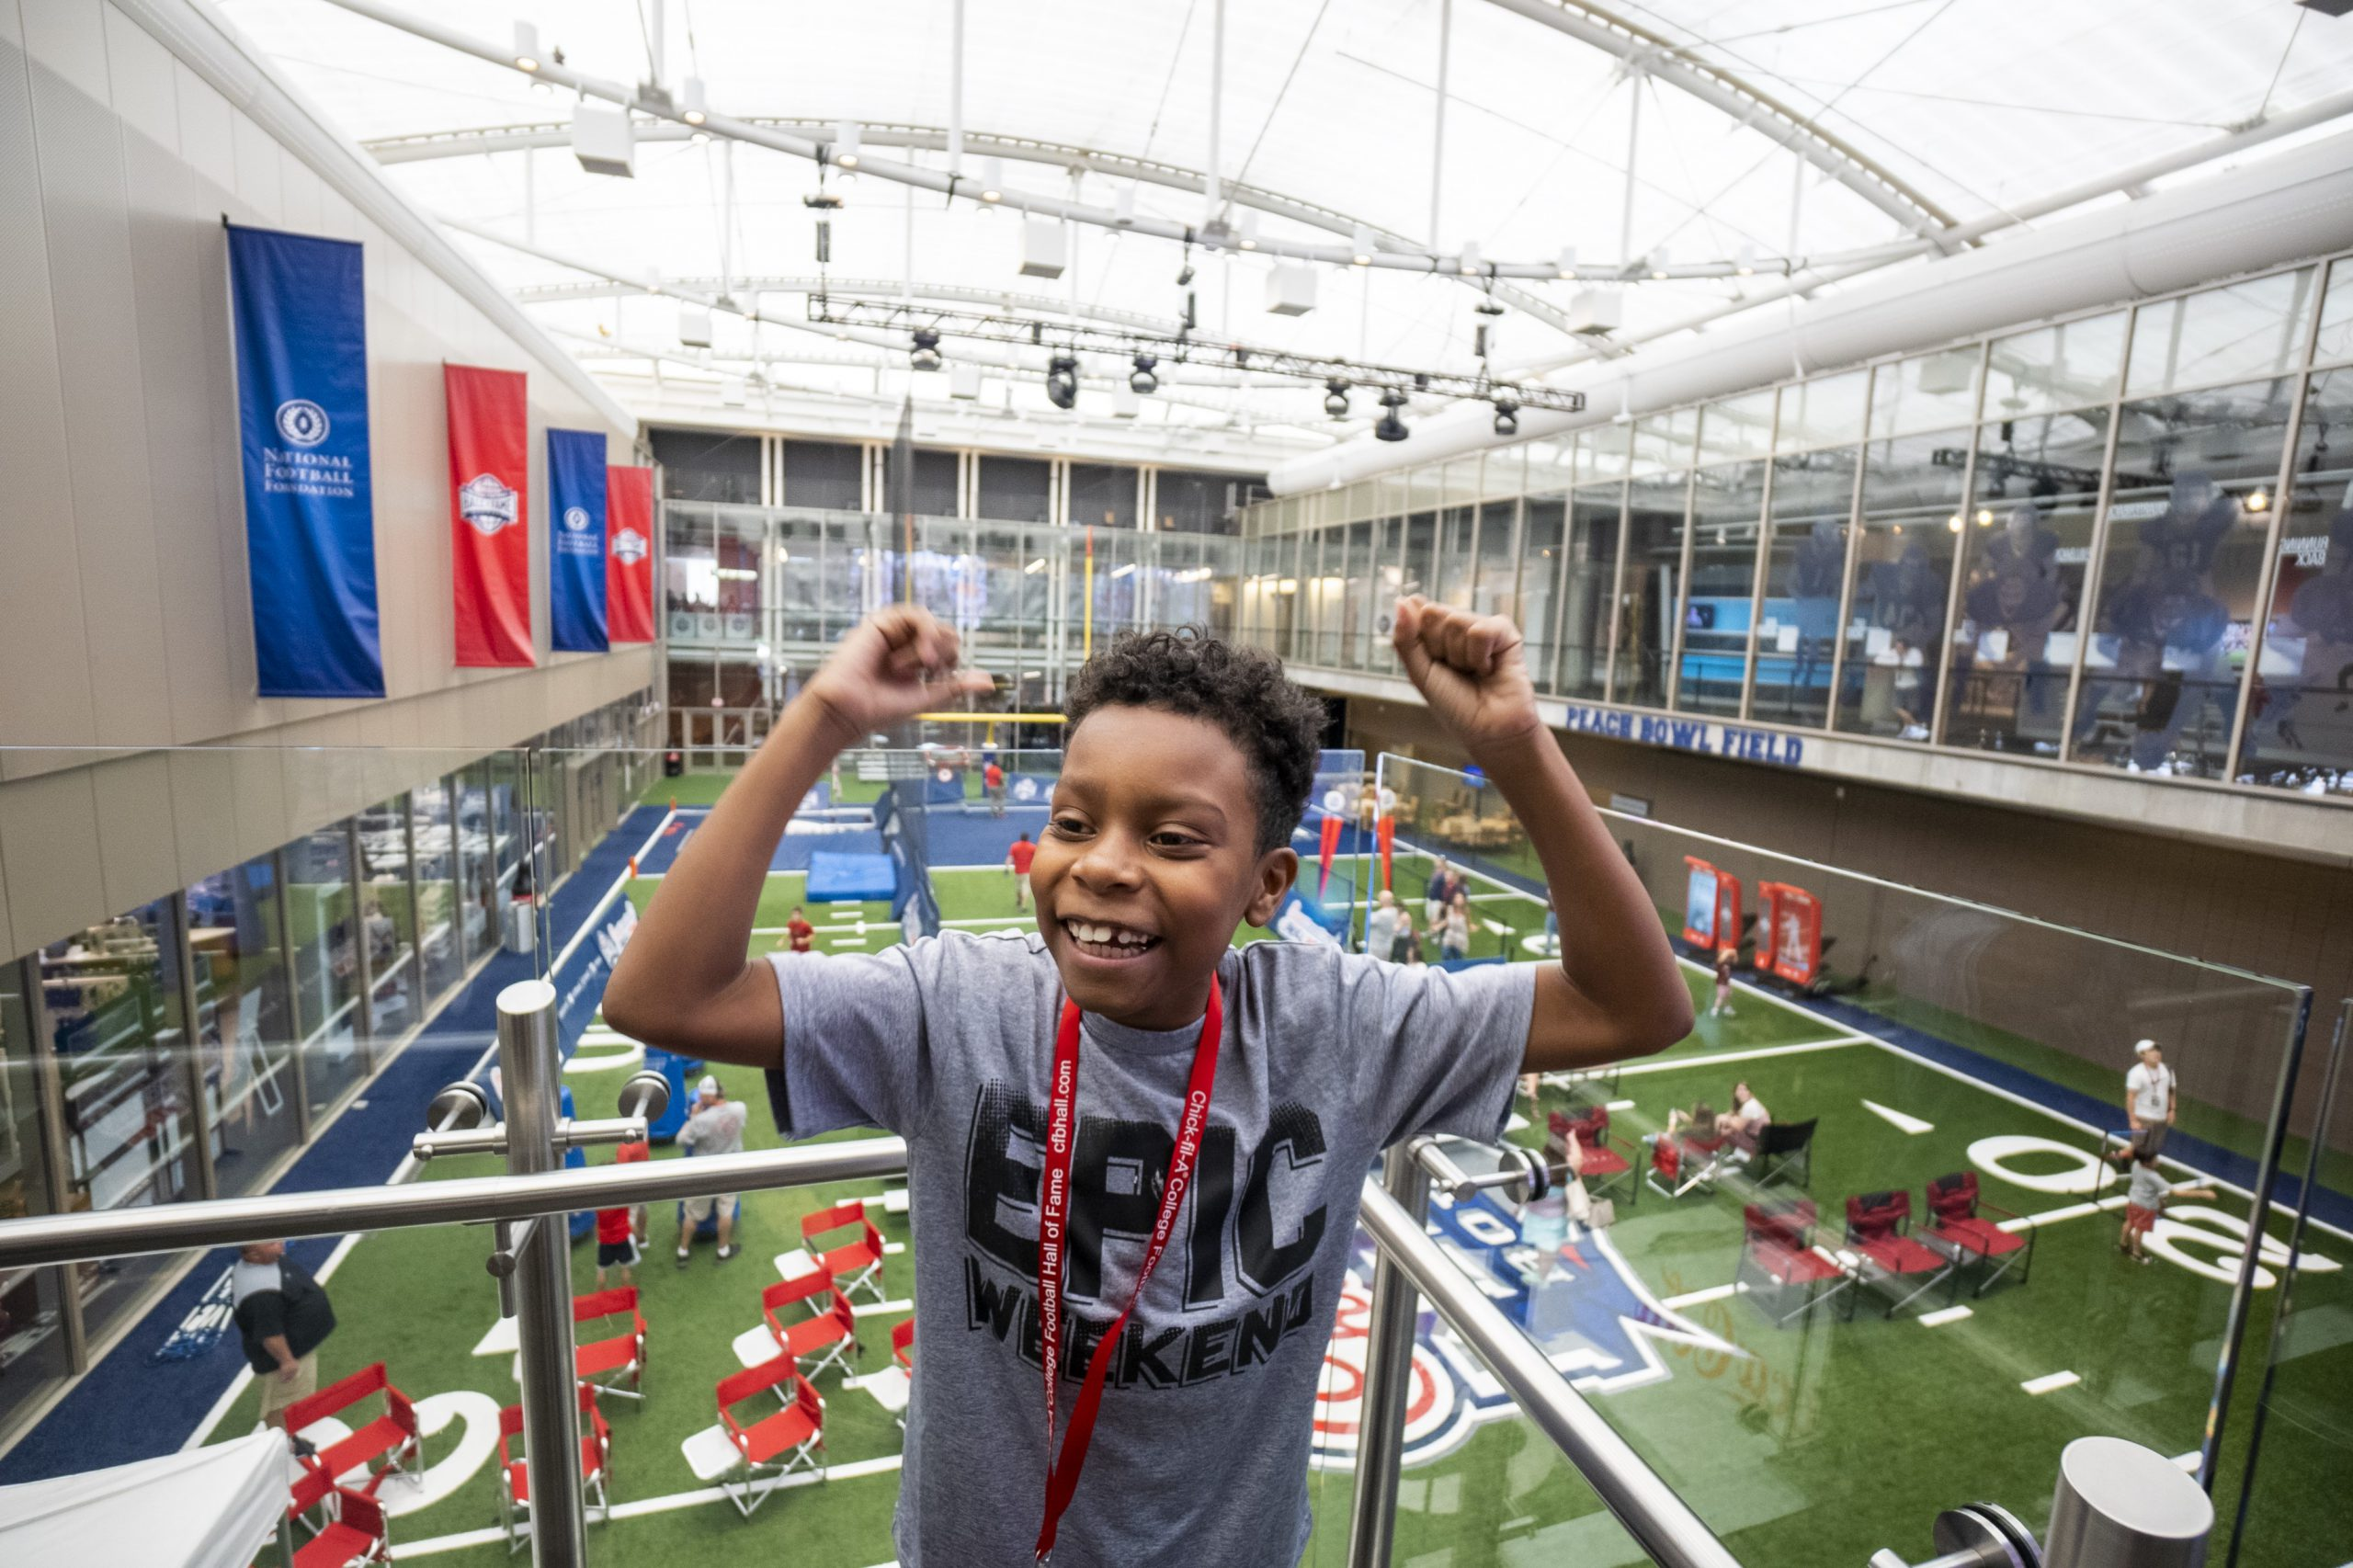 College football fans of all ages love the Chick-fil-A College Football Hall of Fame in Atlanta